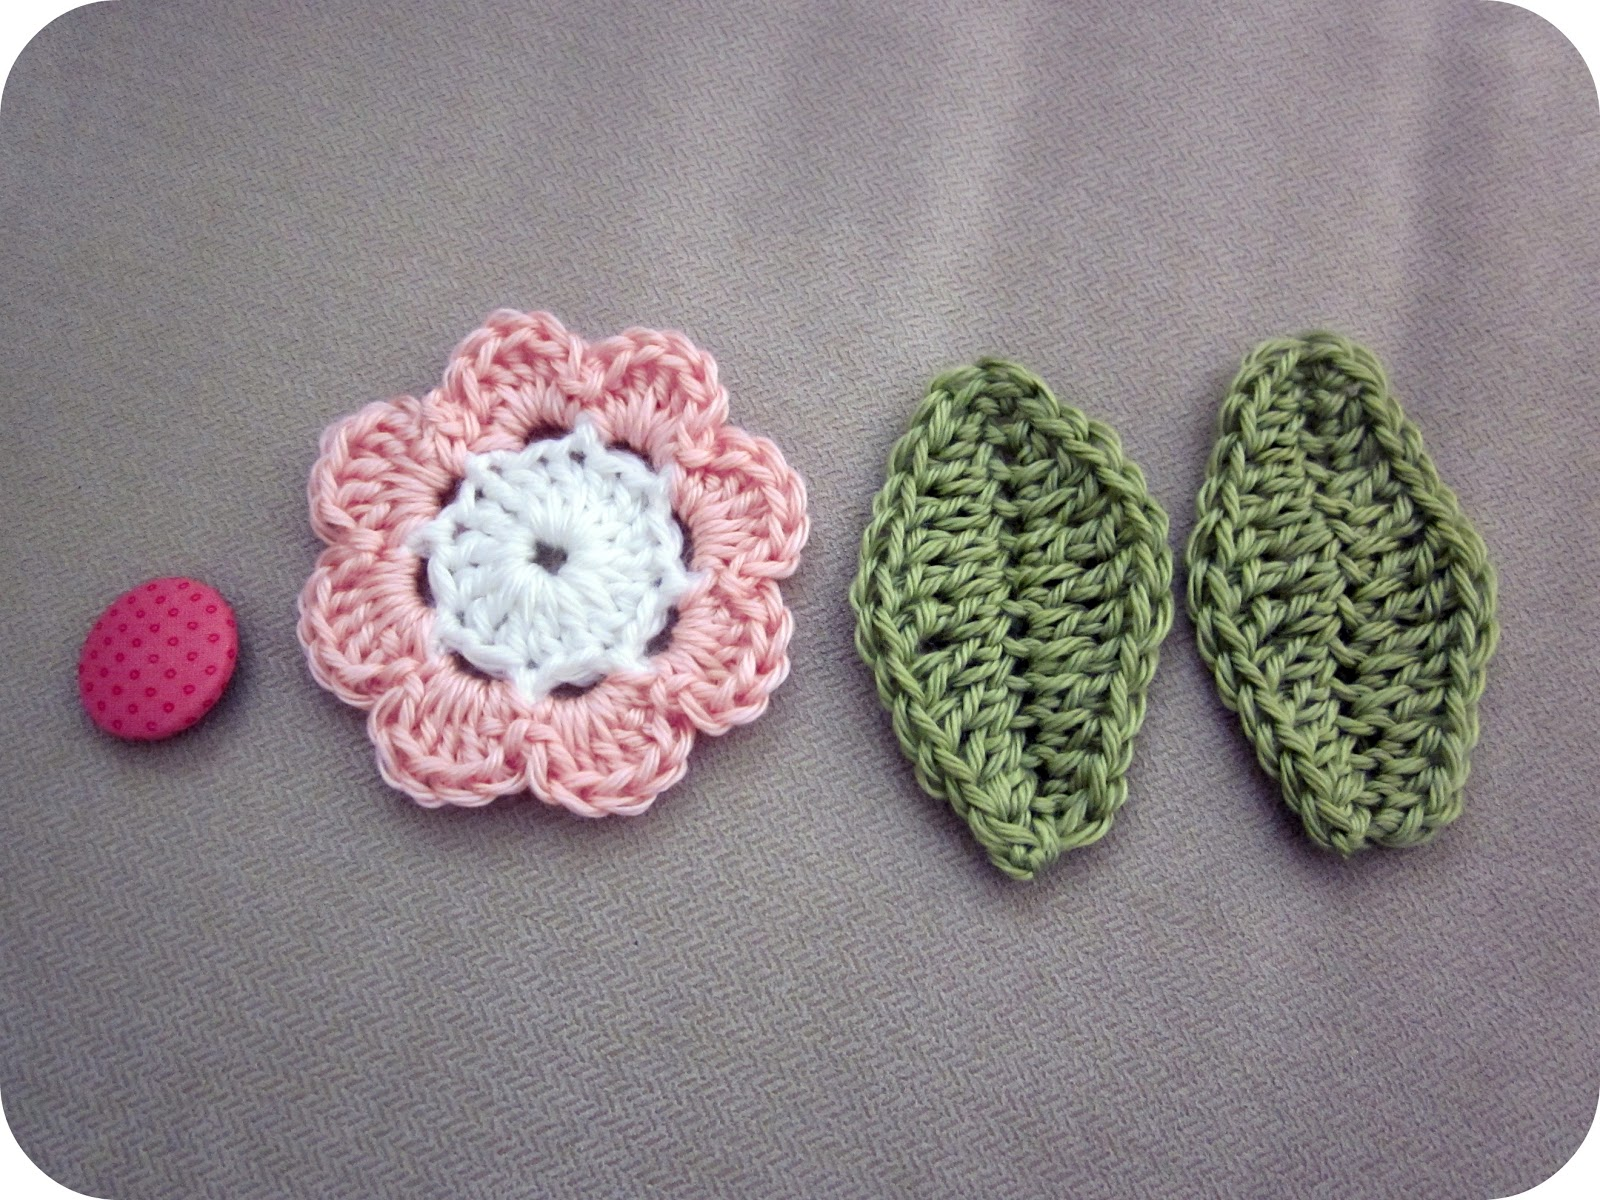 Crochet Patterns Video Tutorial : TristinandCompany: Mini Tutorial: How to crochet leaves